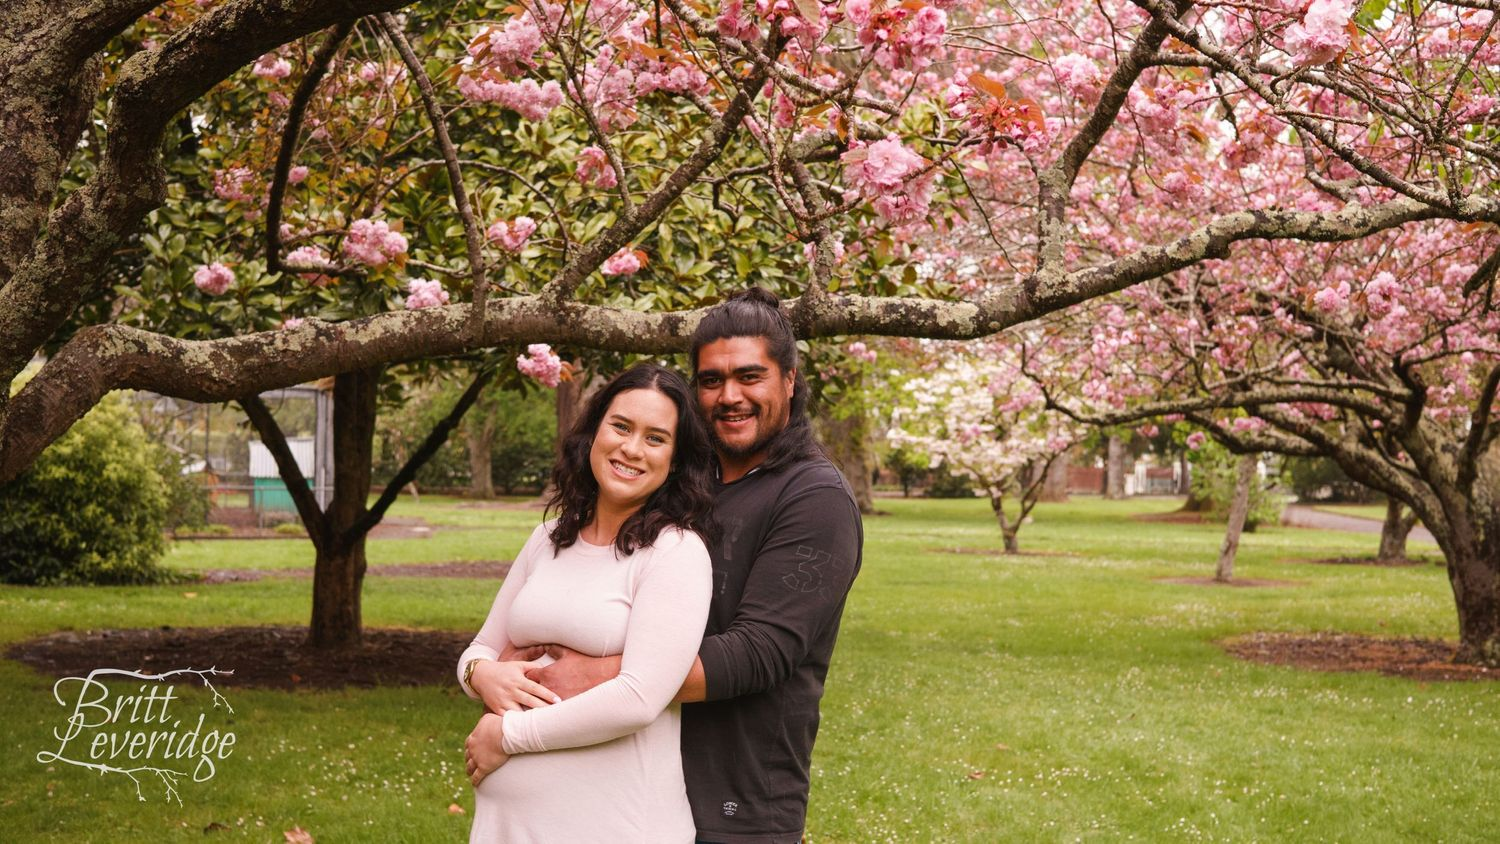 Pregnant lady with partner in front of flowering pink tree - Masterton NZ